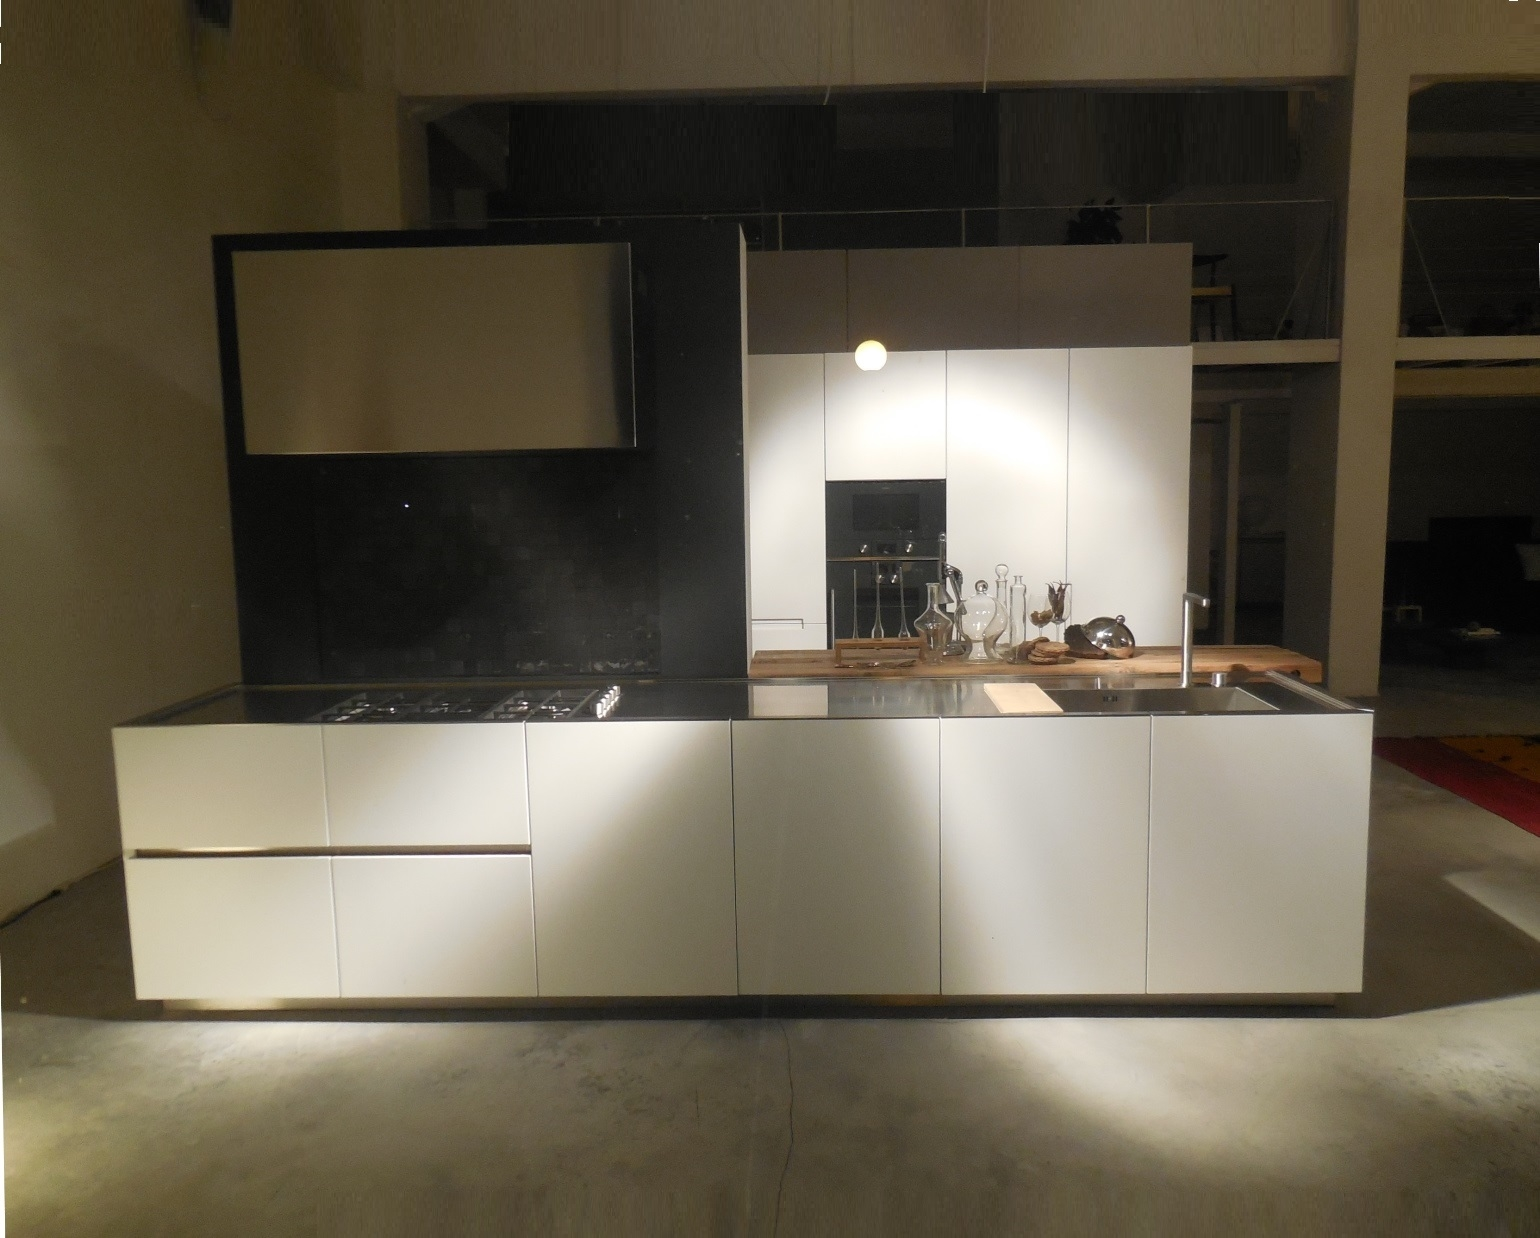 cucina boffi cucina boffi k20 design norbert wangen design cucine a prezzi scontati. Black Bedroom Furniture Sets. Home Design Ideas